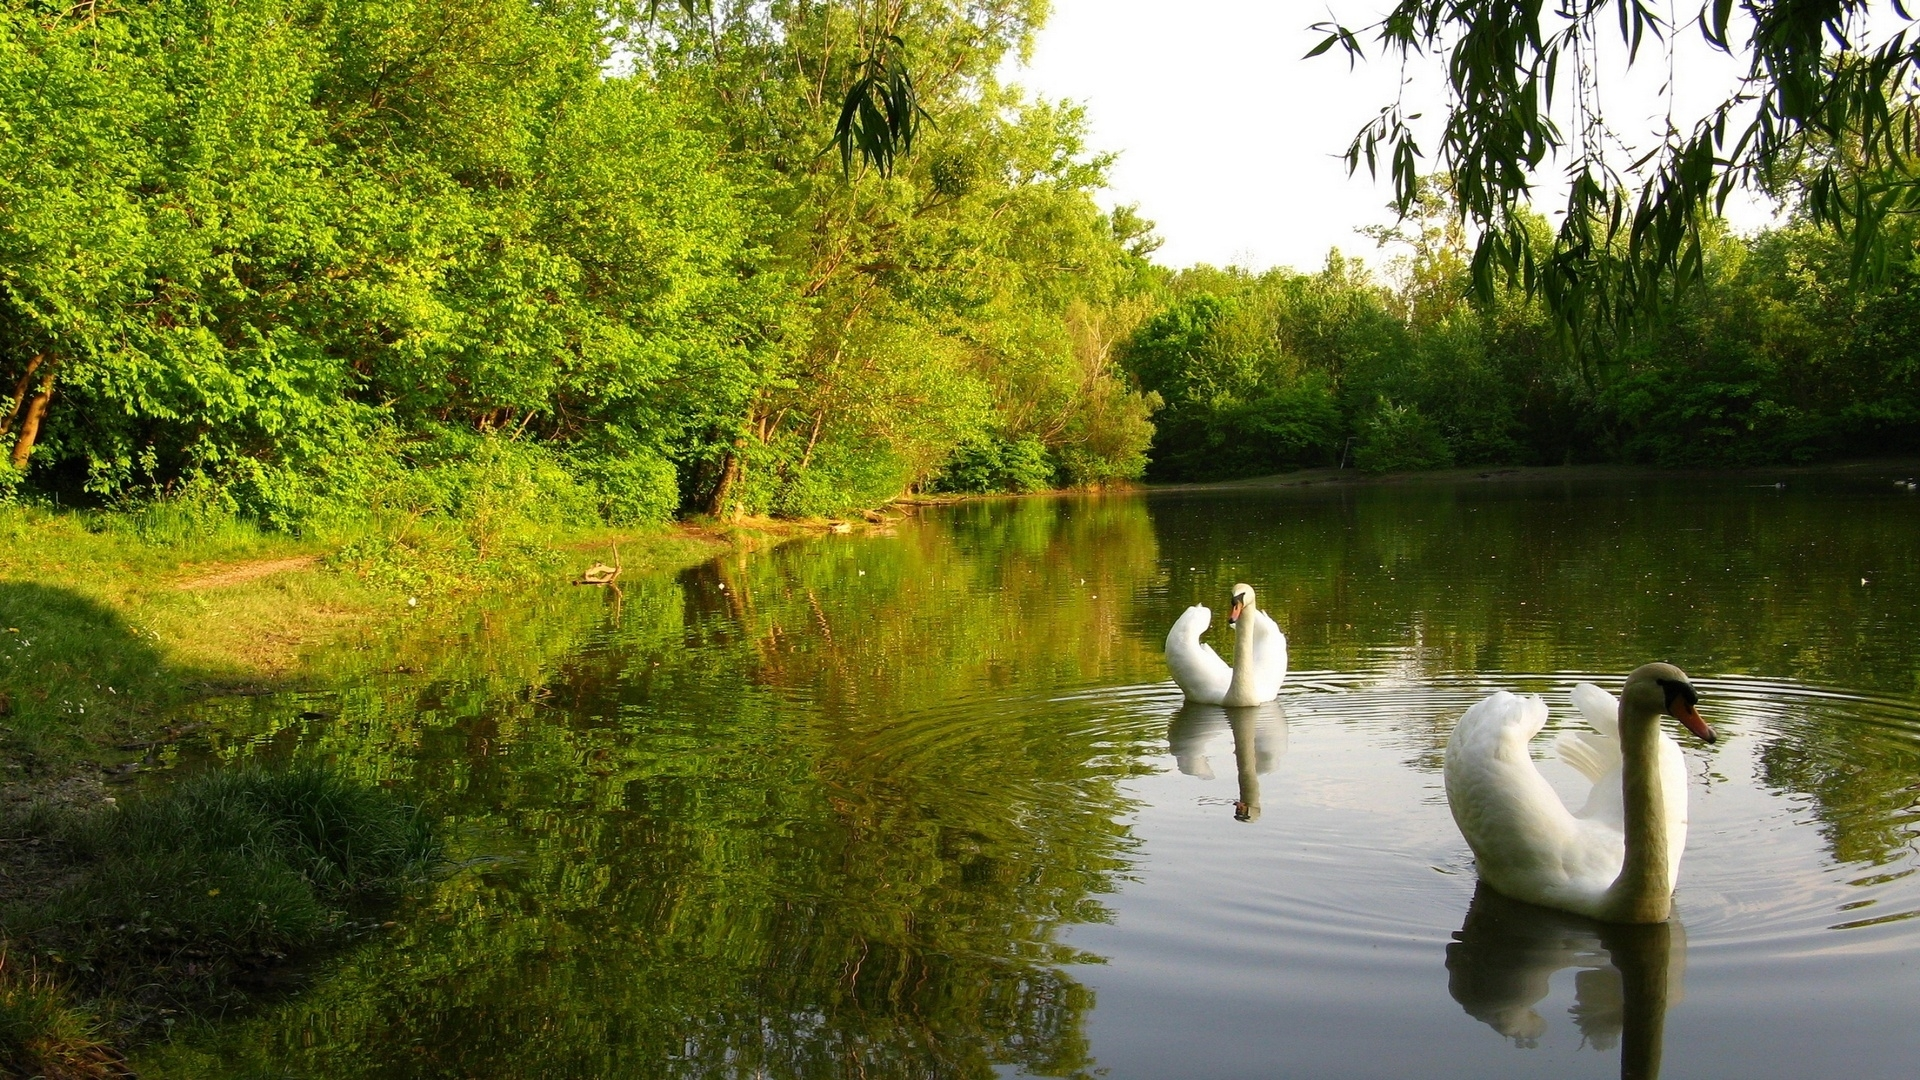 24922 download wallpaper Animals, Birds, Rivers, Swans screensavers and pictures for free